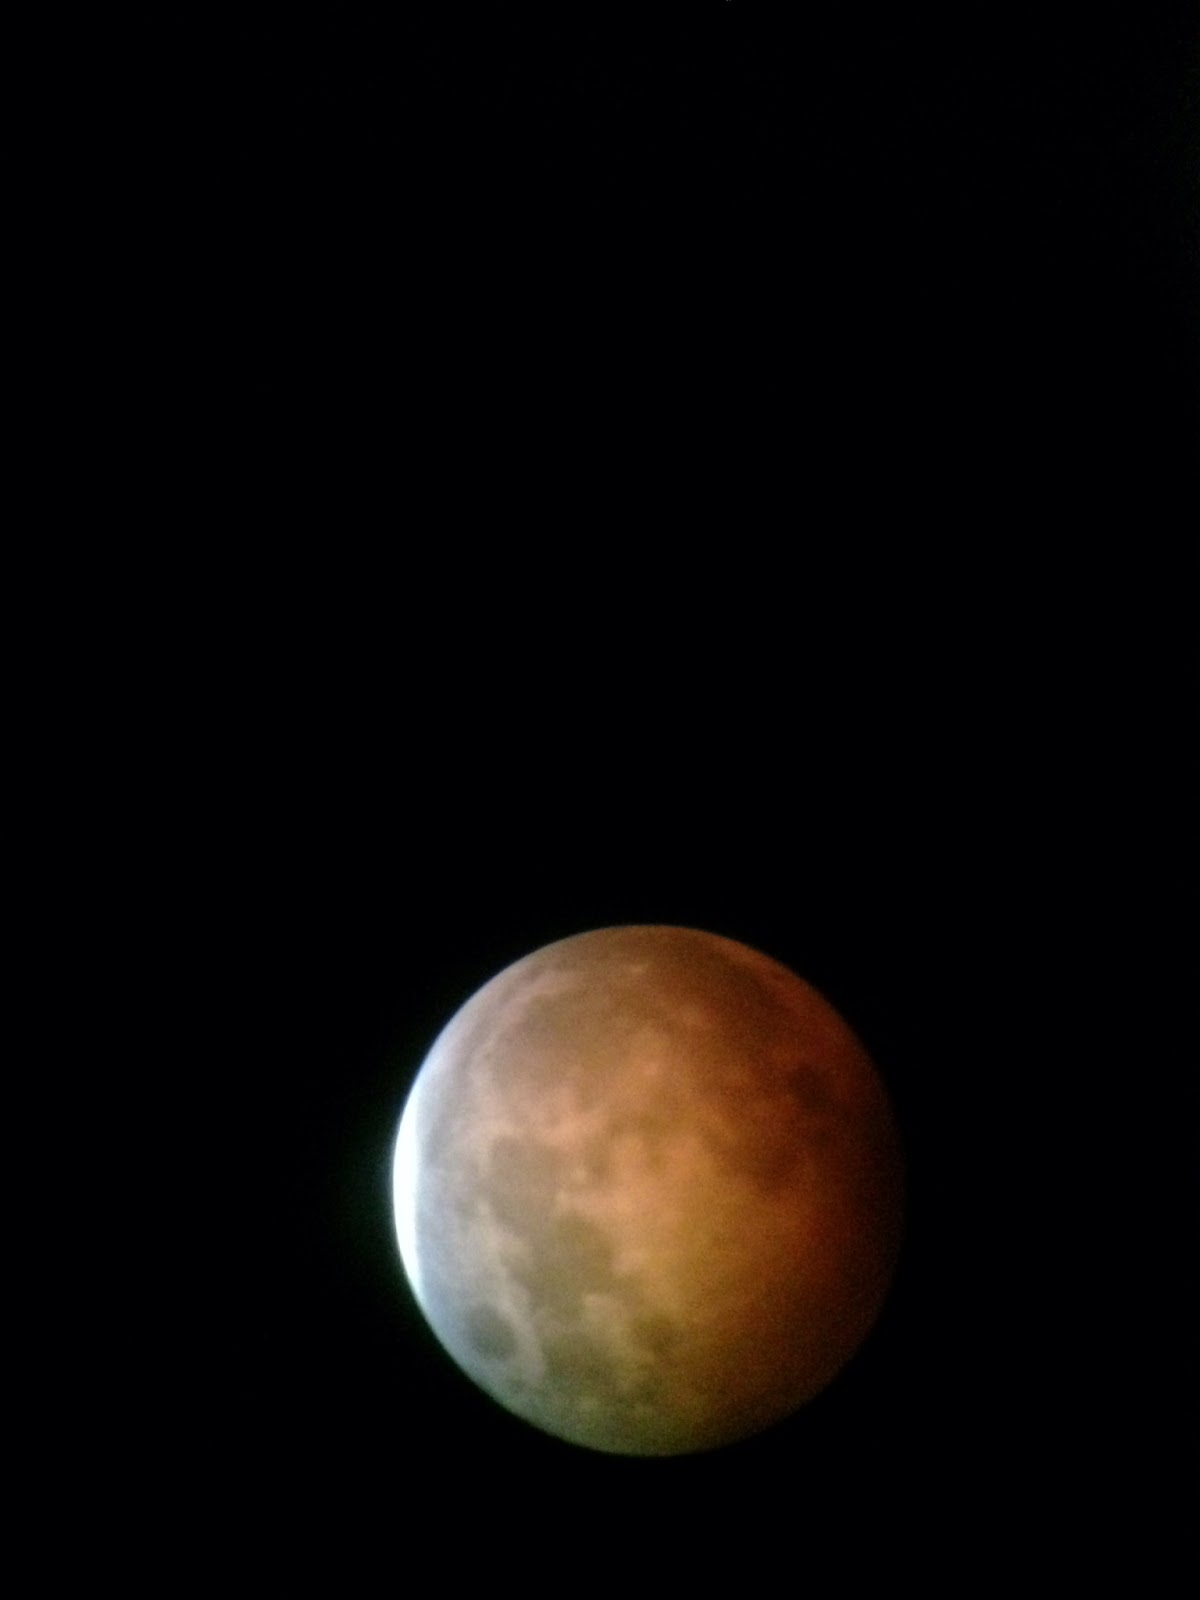 lunar eclipse iphone